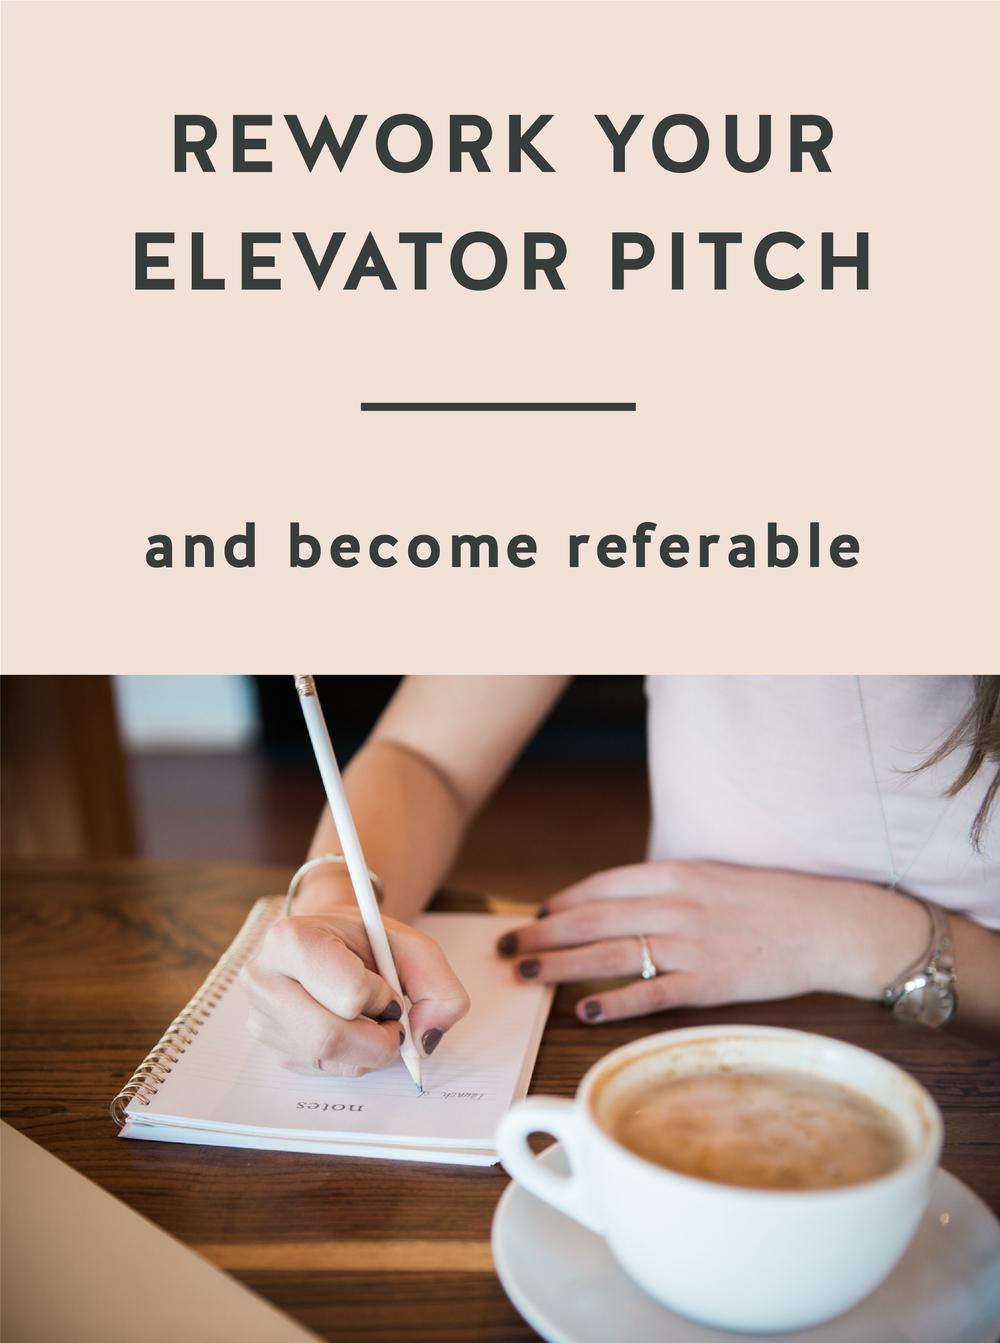 Rework your elevator pitch and Become Referable